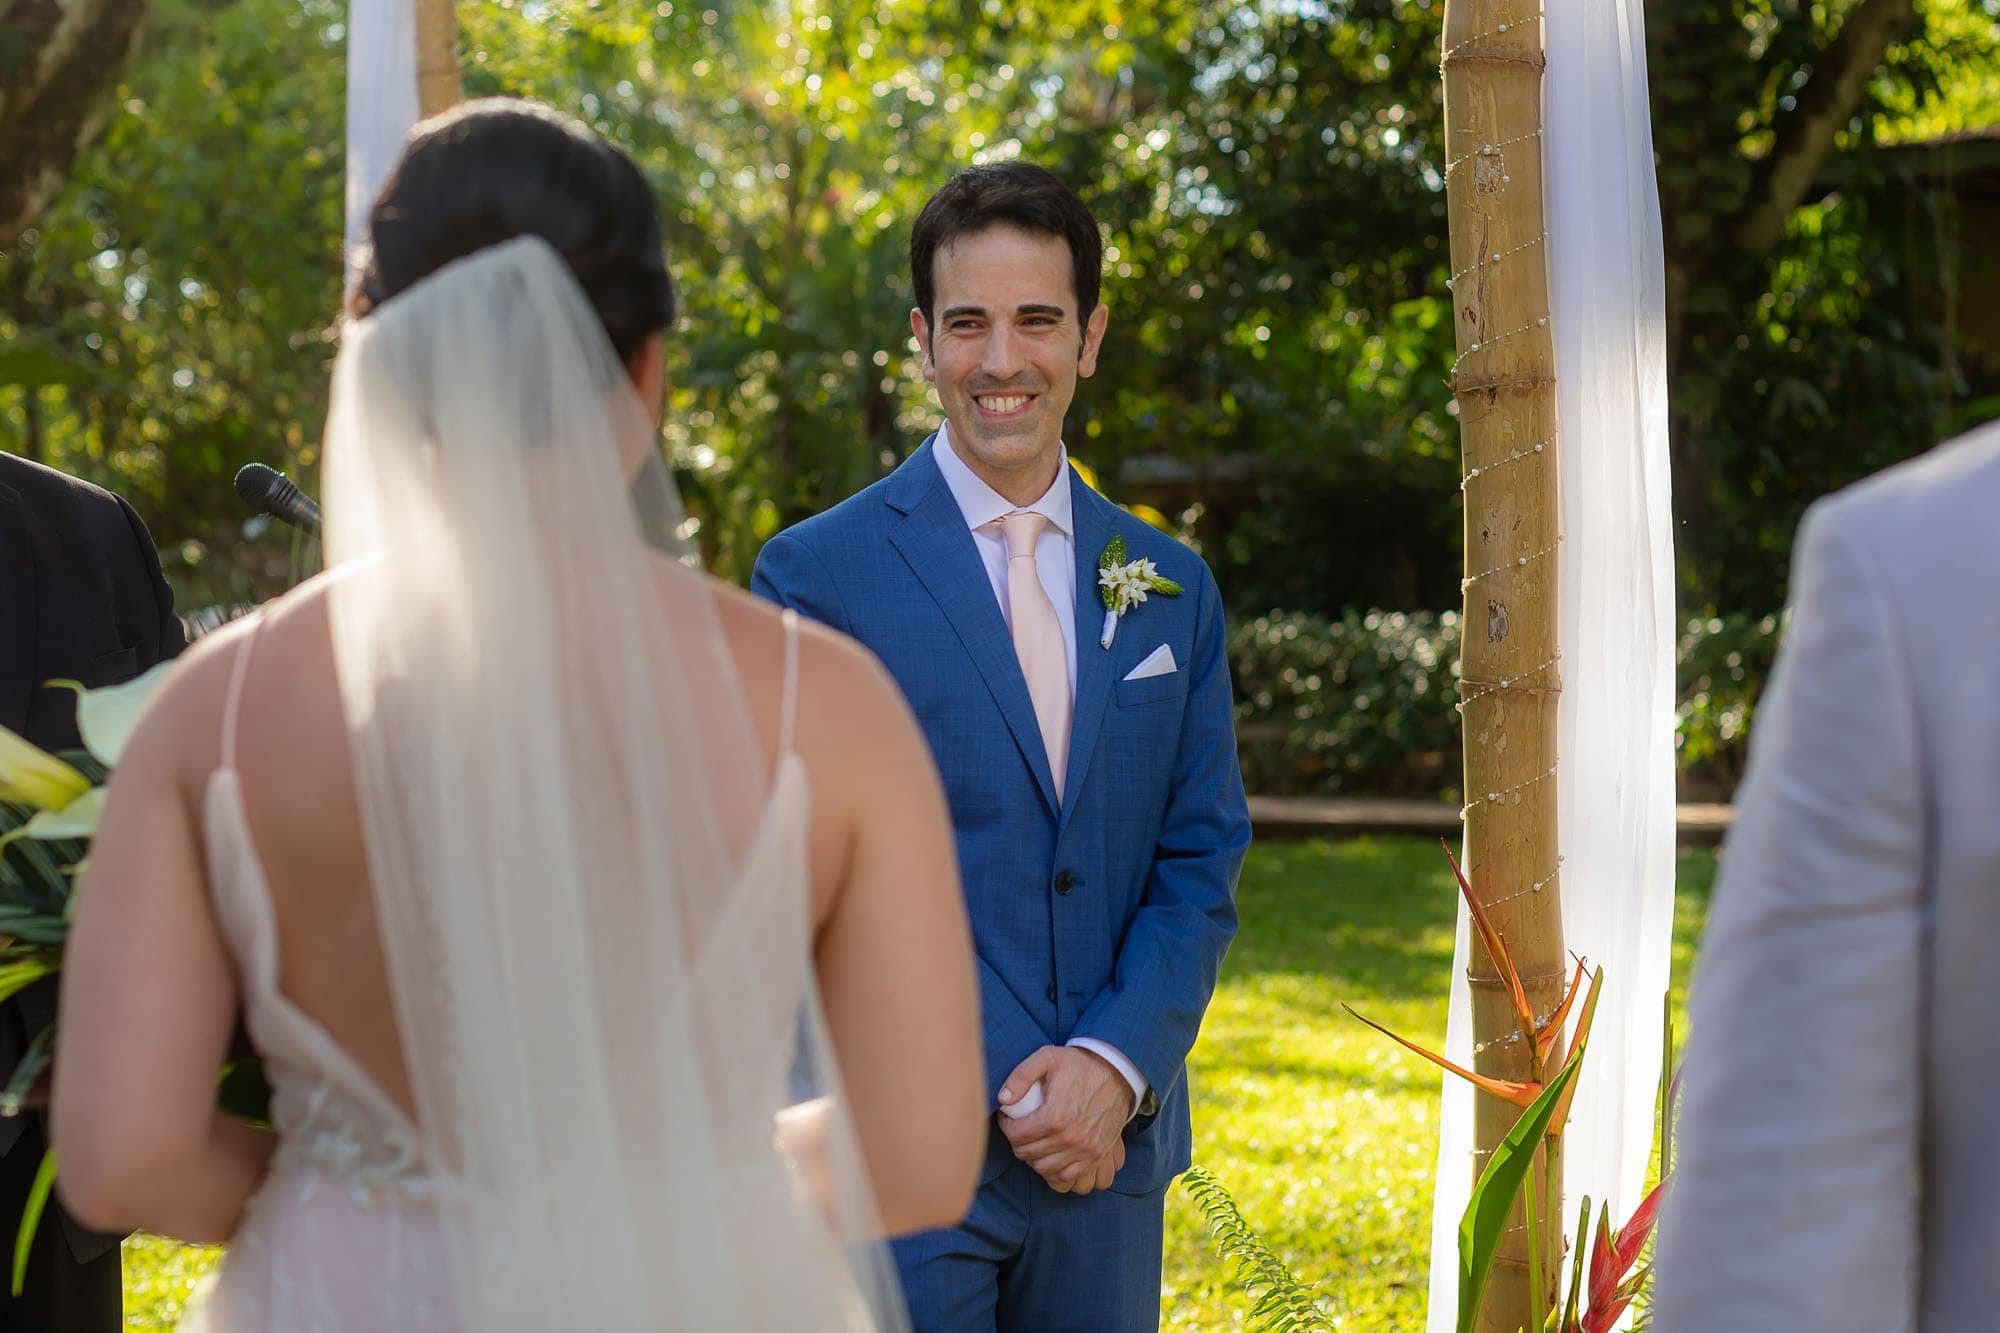 The groom's smile as he sees the bride as she comes down the aisle